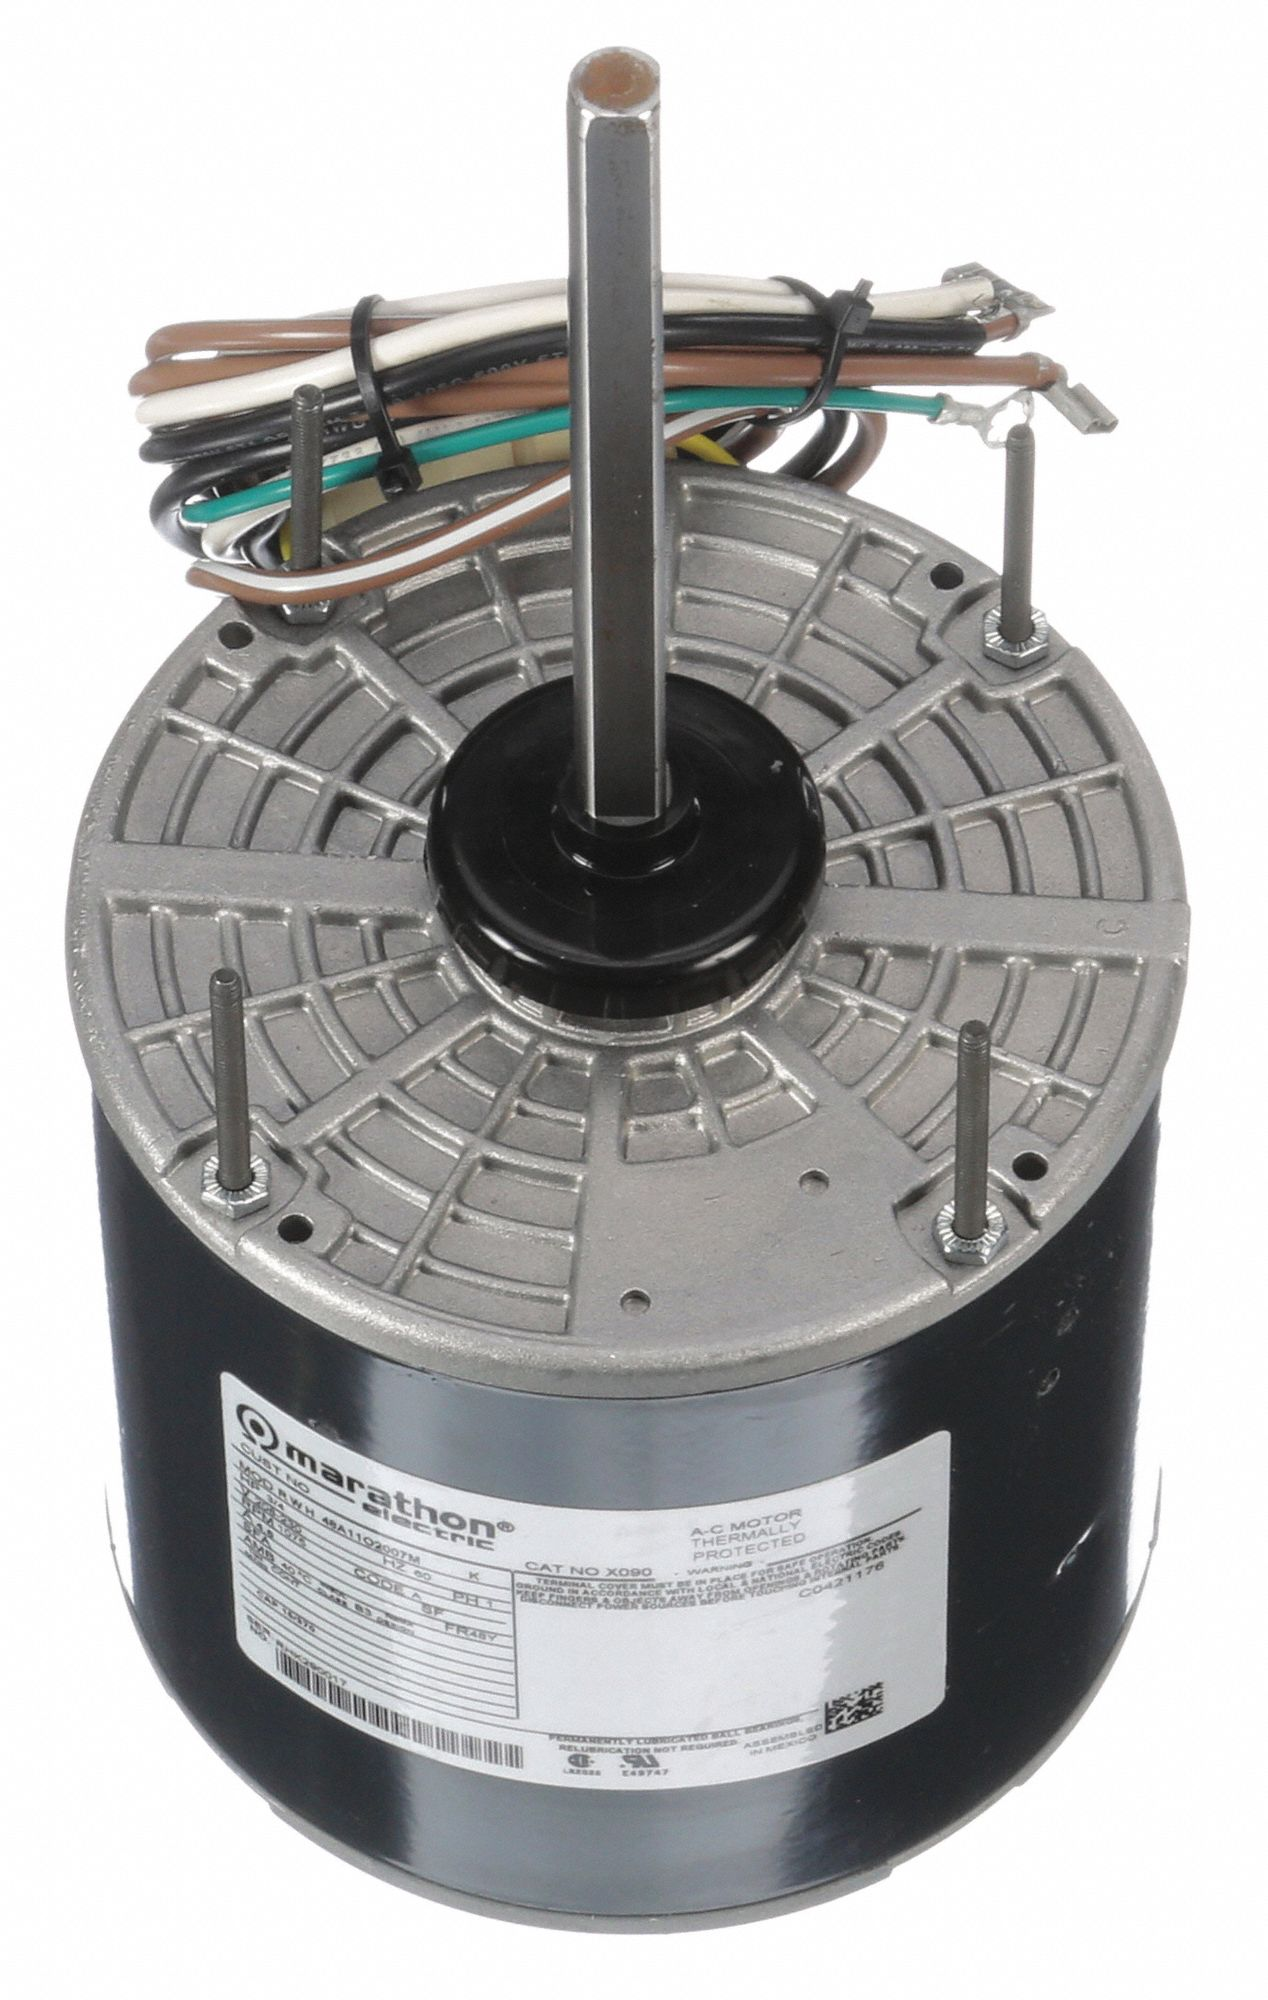 Motor Wiring Diagrams 3 Wire Also 3 Speed Fan Motor Capacitor Wiring